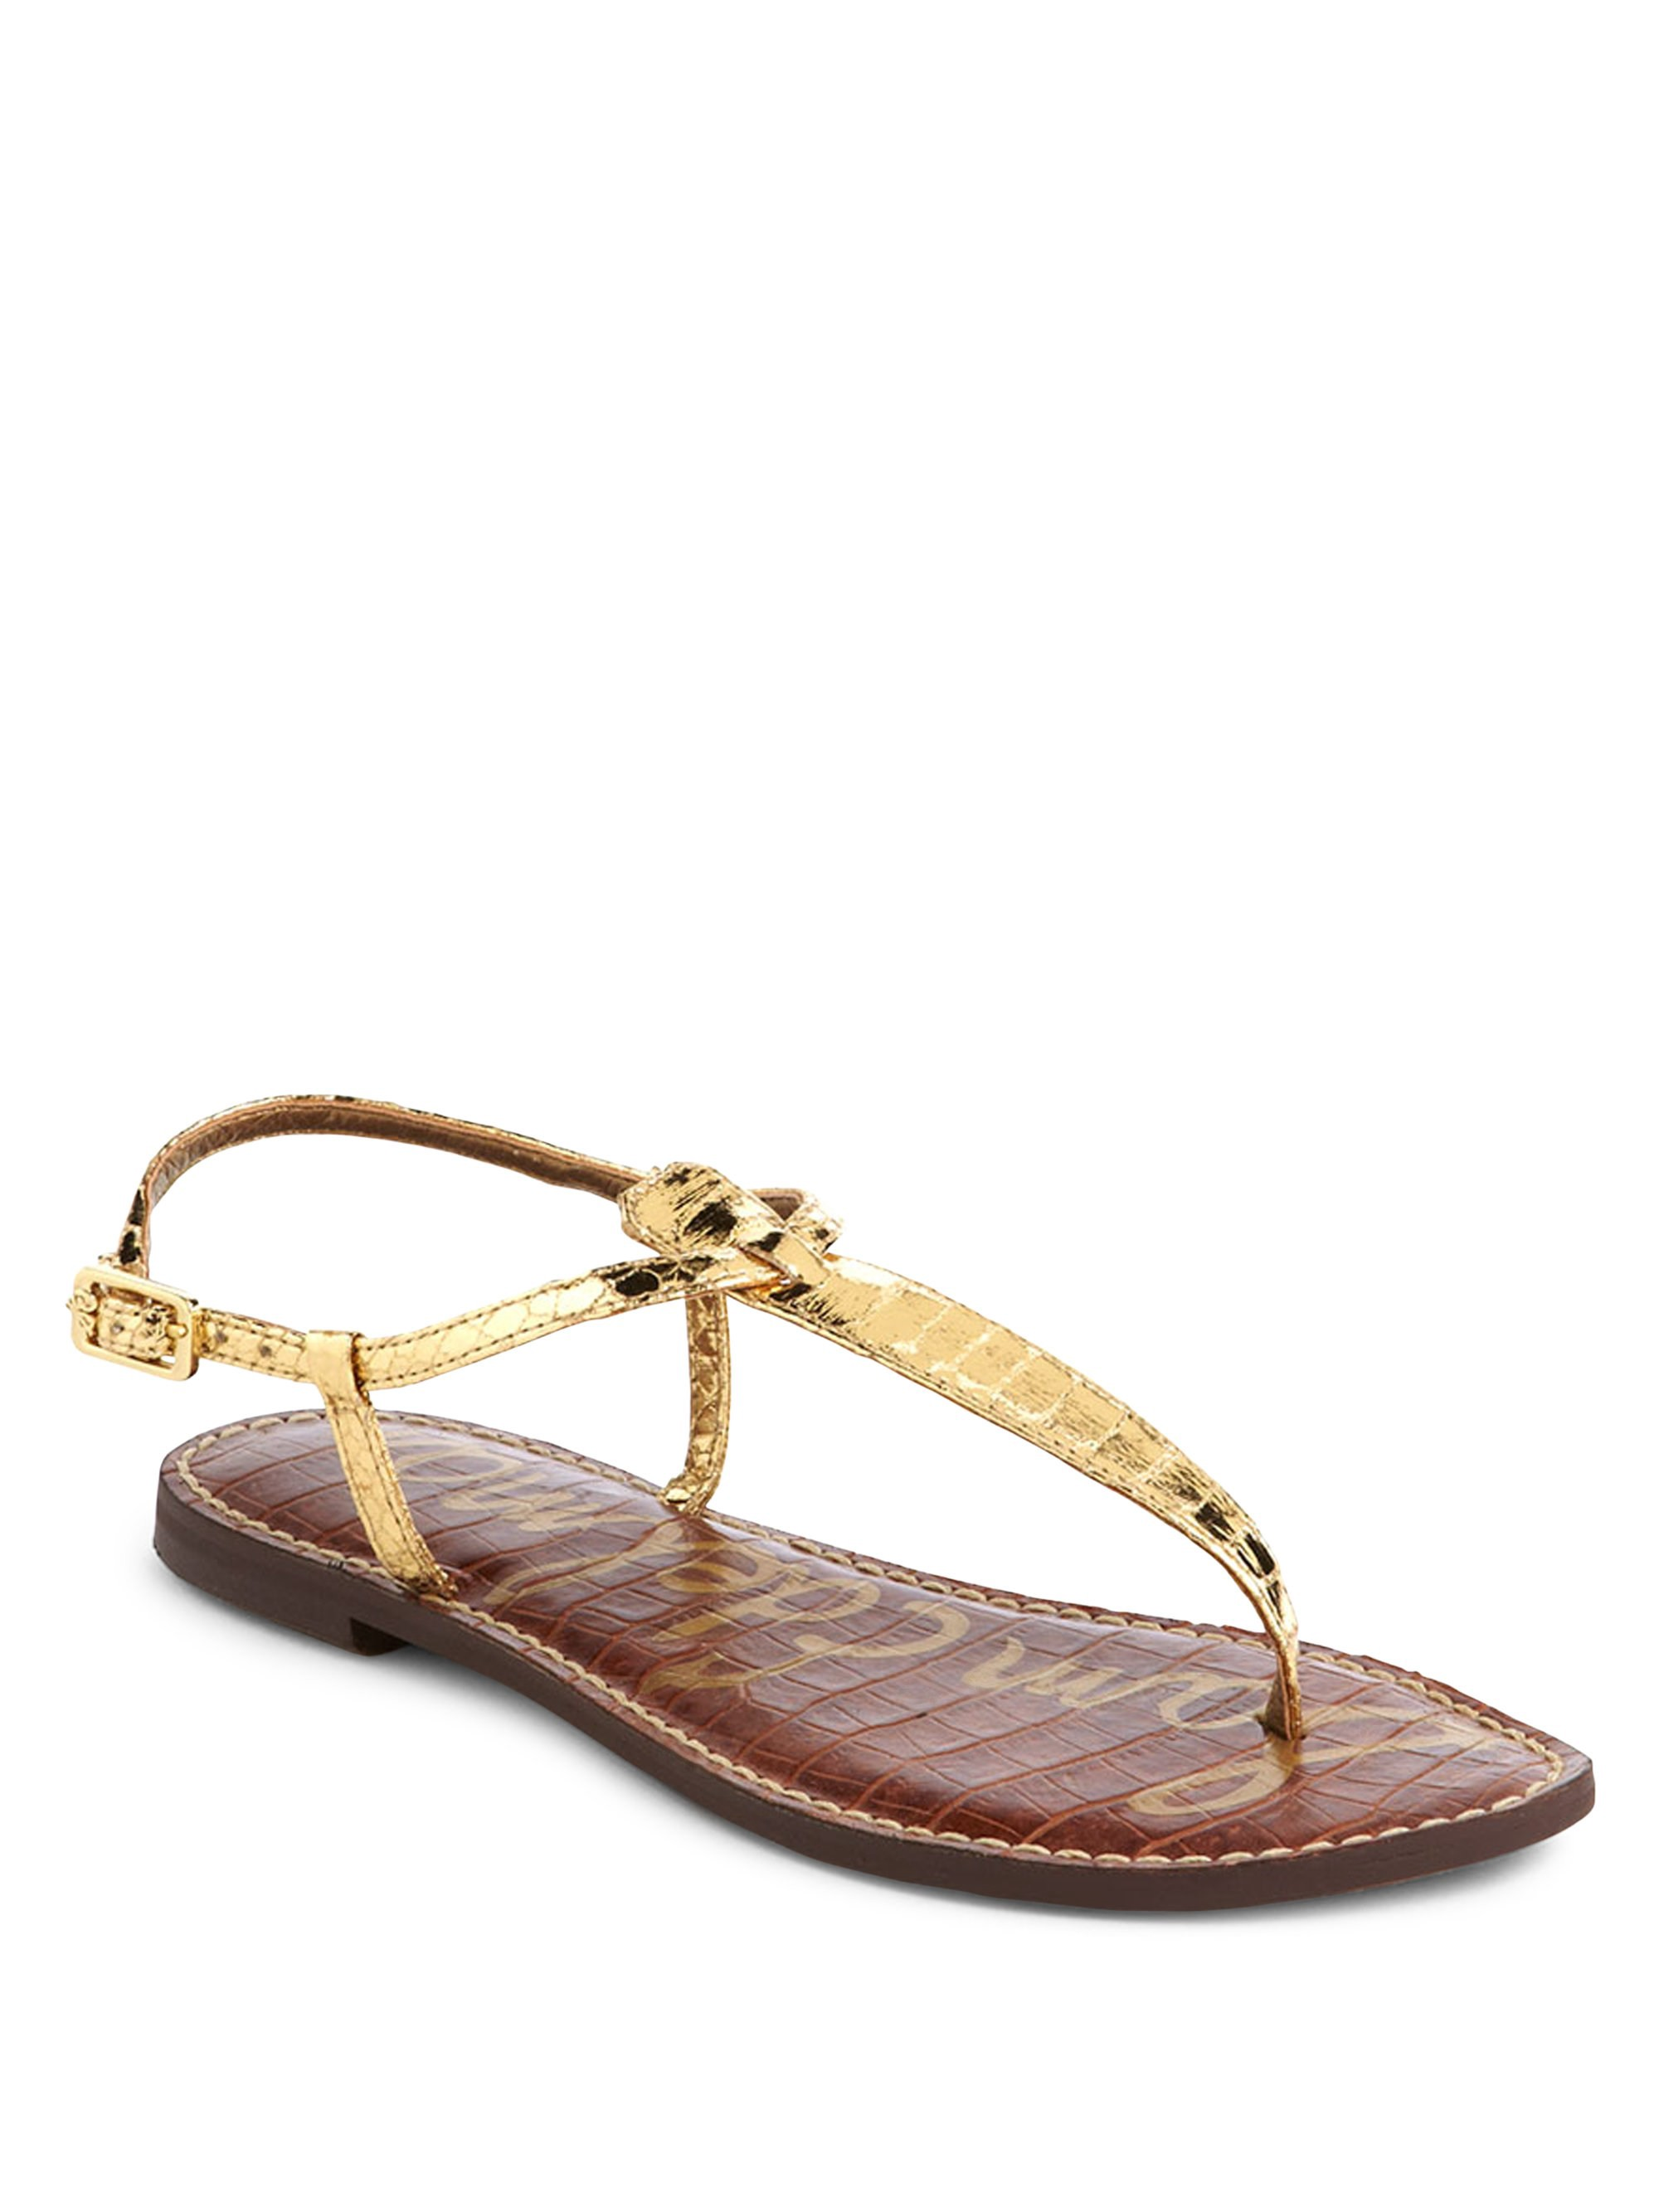 c4a1ca7c623 Sam Edelman Gigi Thong Slide Sandals - Gold 10.5